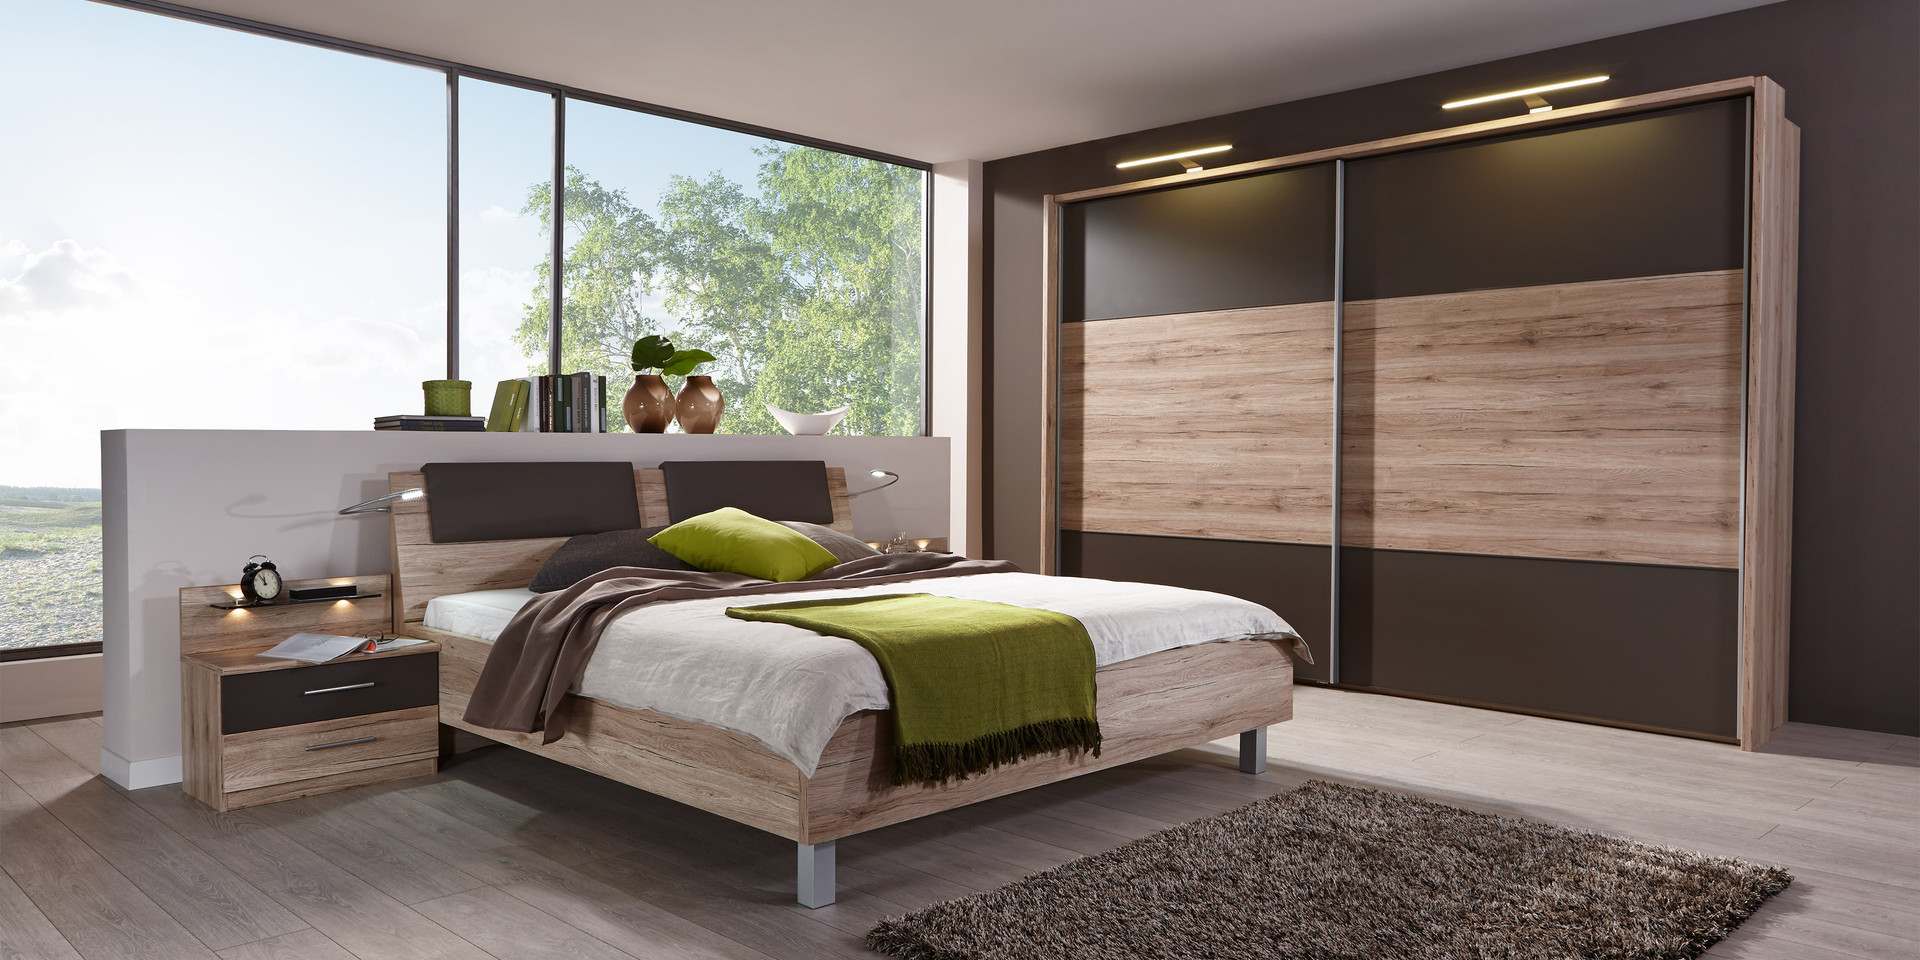 erleben sie das schlafzimmer portland m belhersteller. Black Bedroom Furniture Sets. Home Design Ideas